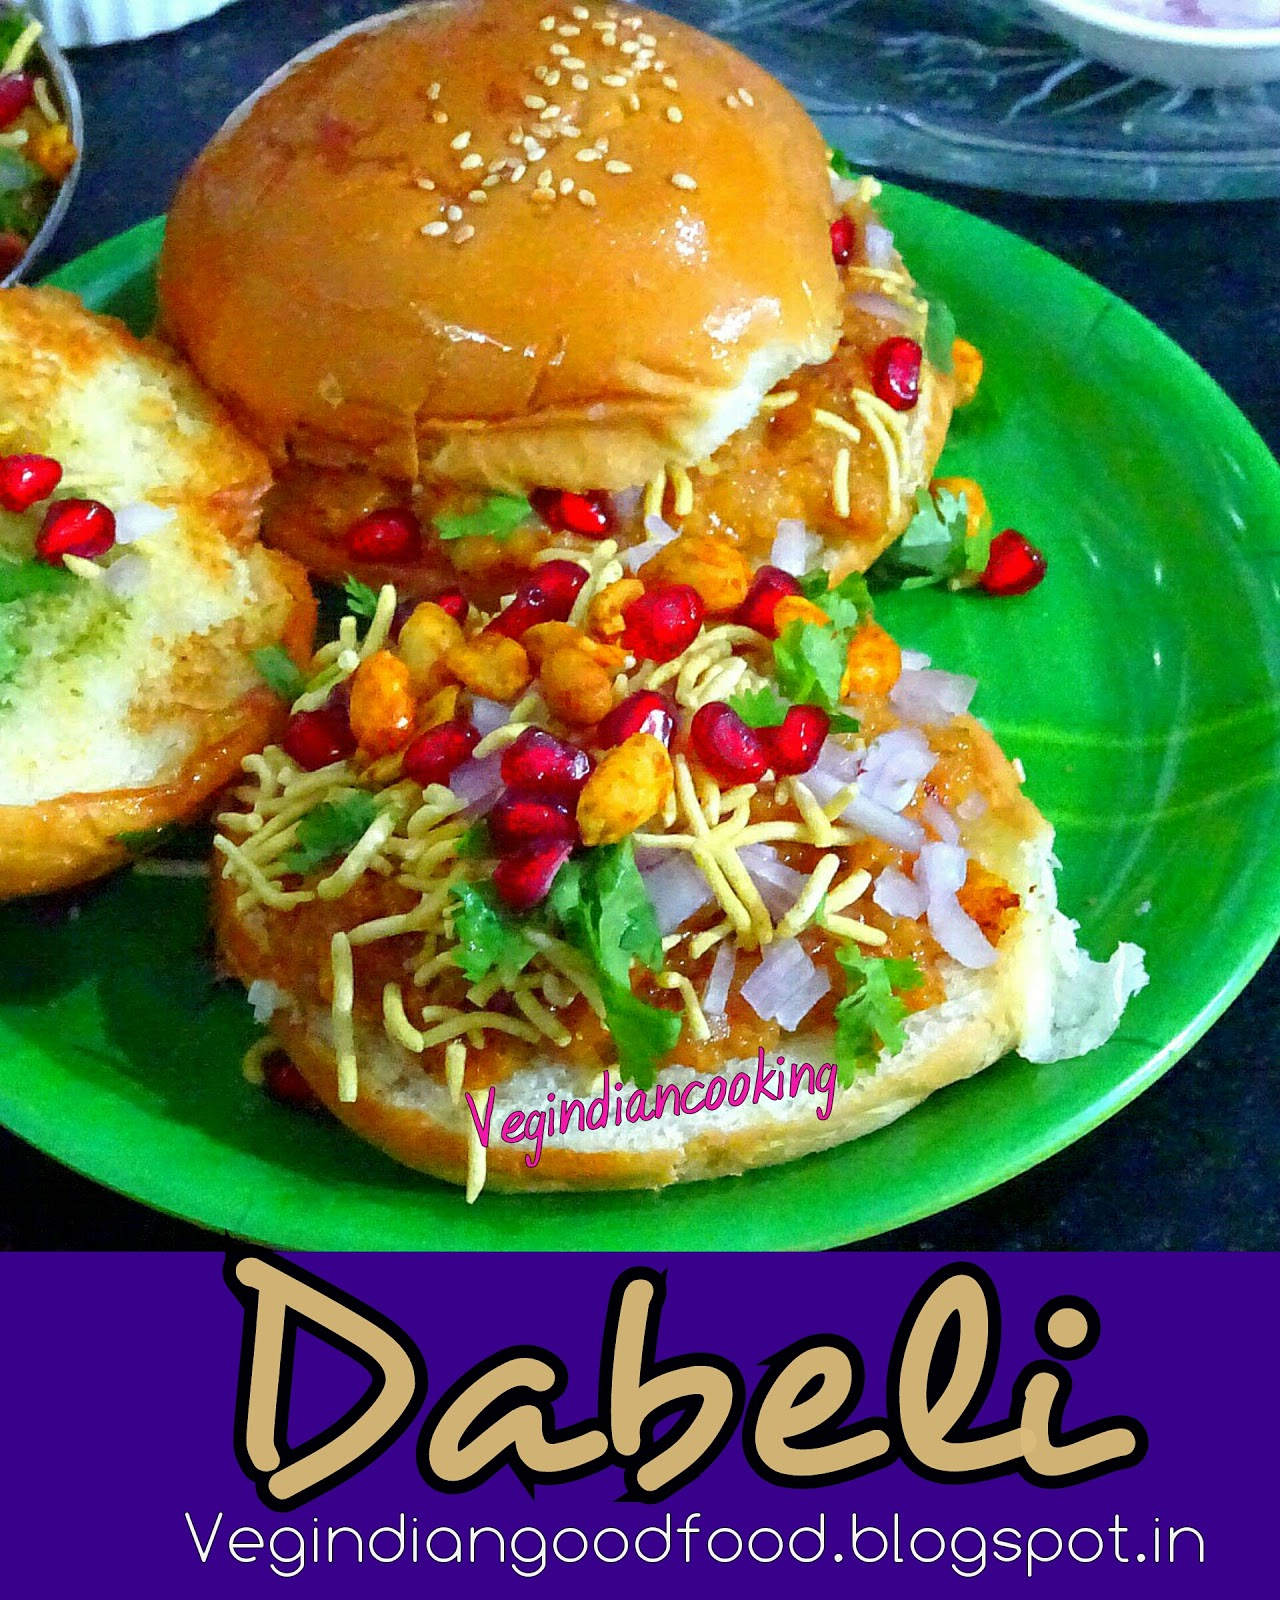 Veg indian cooking dabeli masala todays recipe is again my one of the most confident recipe and i assure you that after attempting this recipe you dont look anywhere for dabeli or dabeli forumfinder Image collections